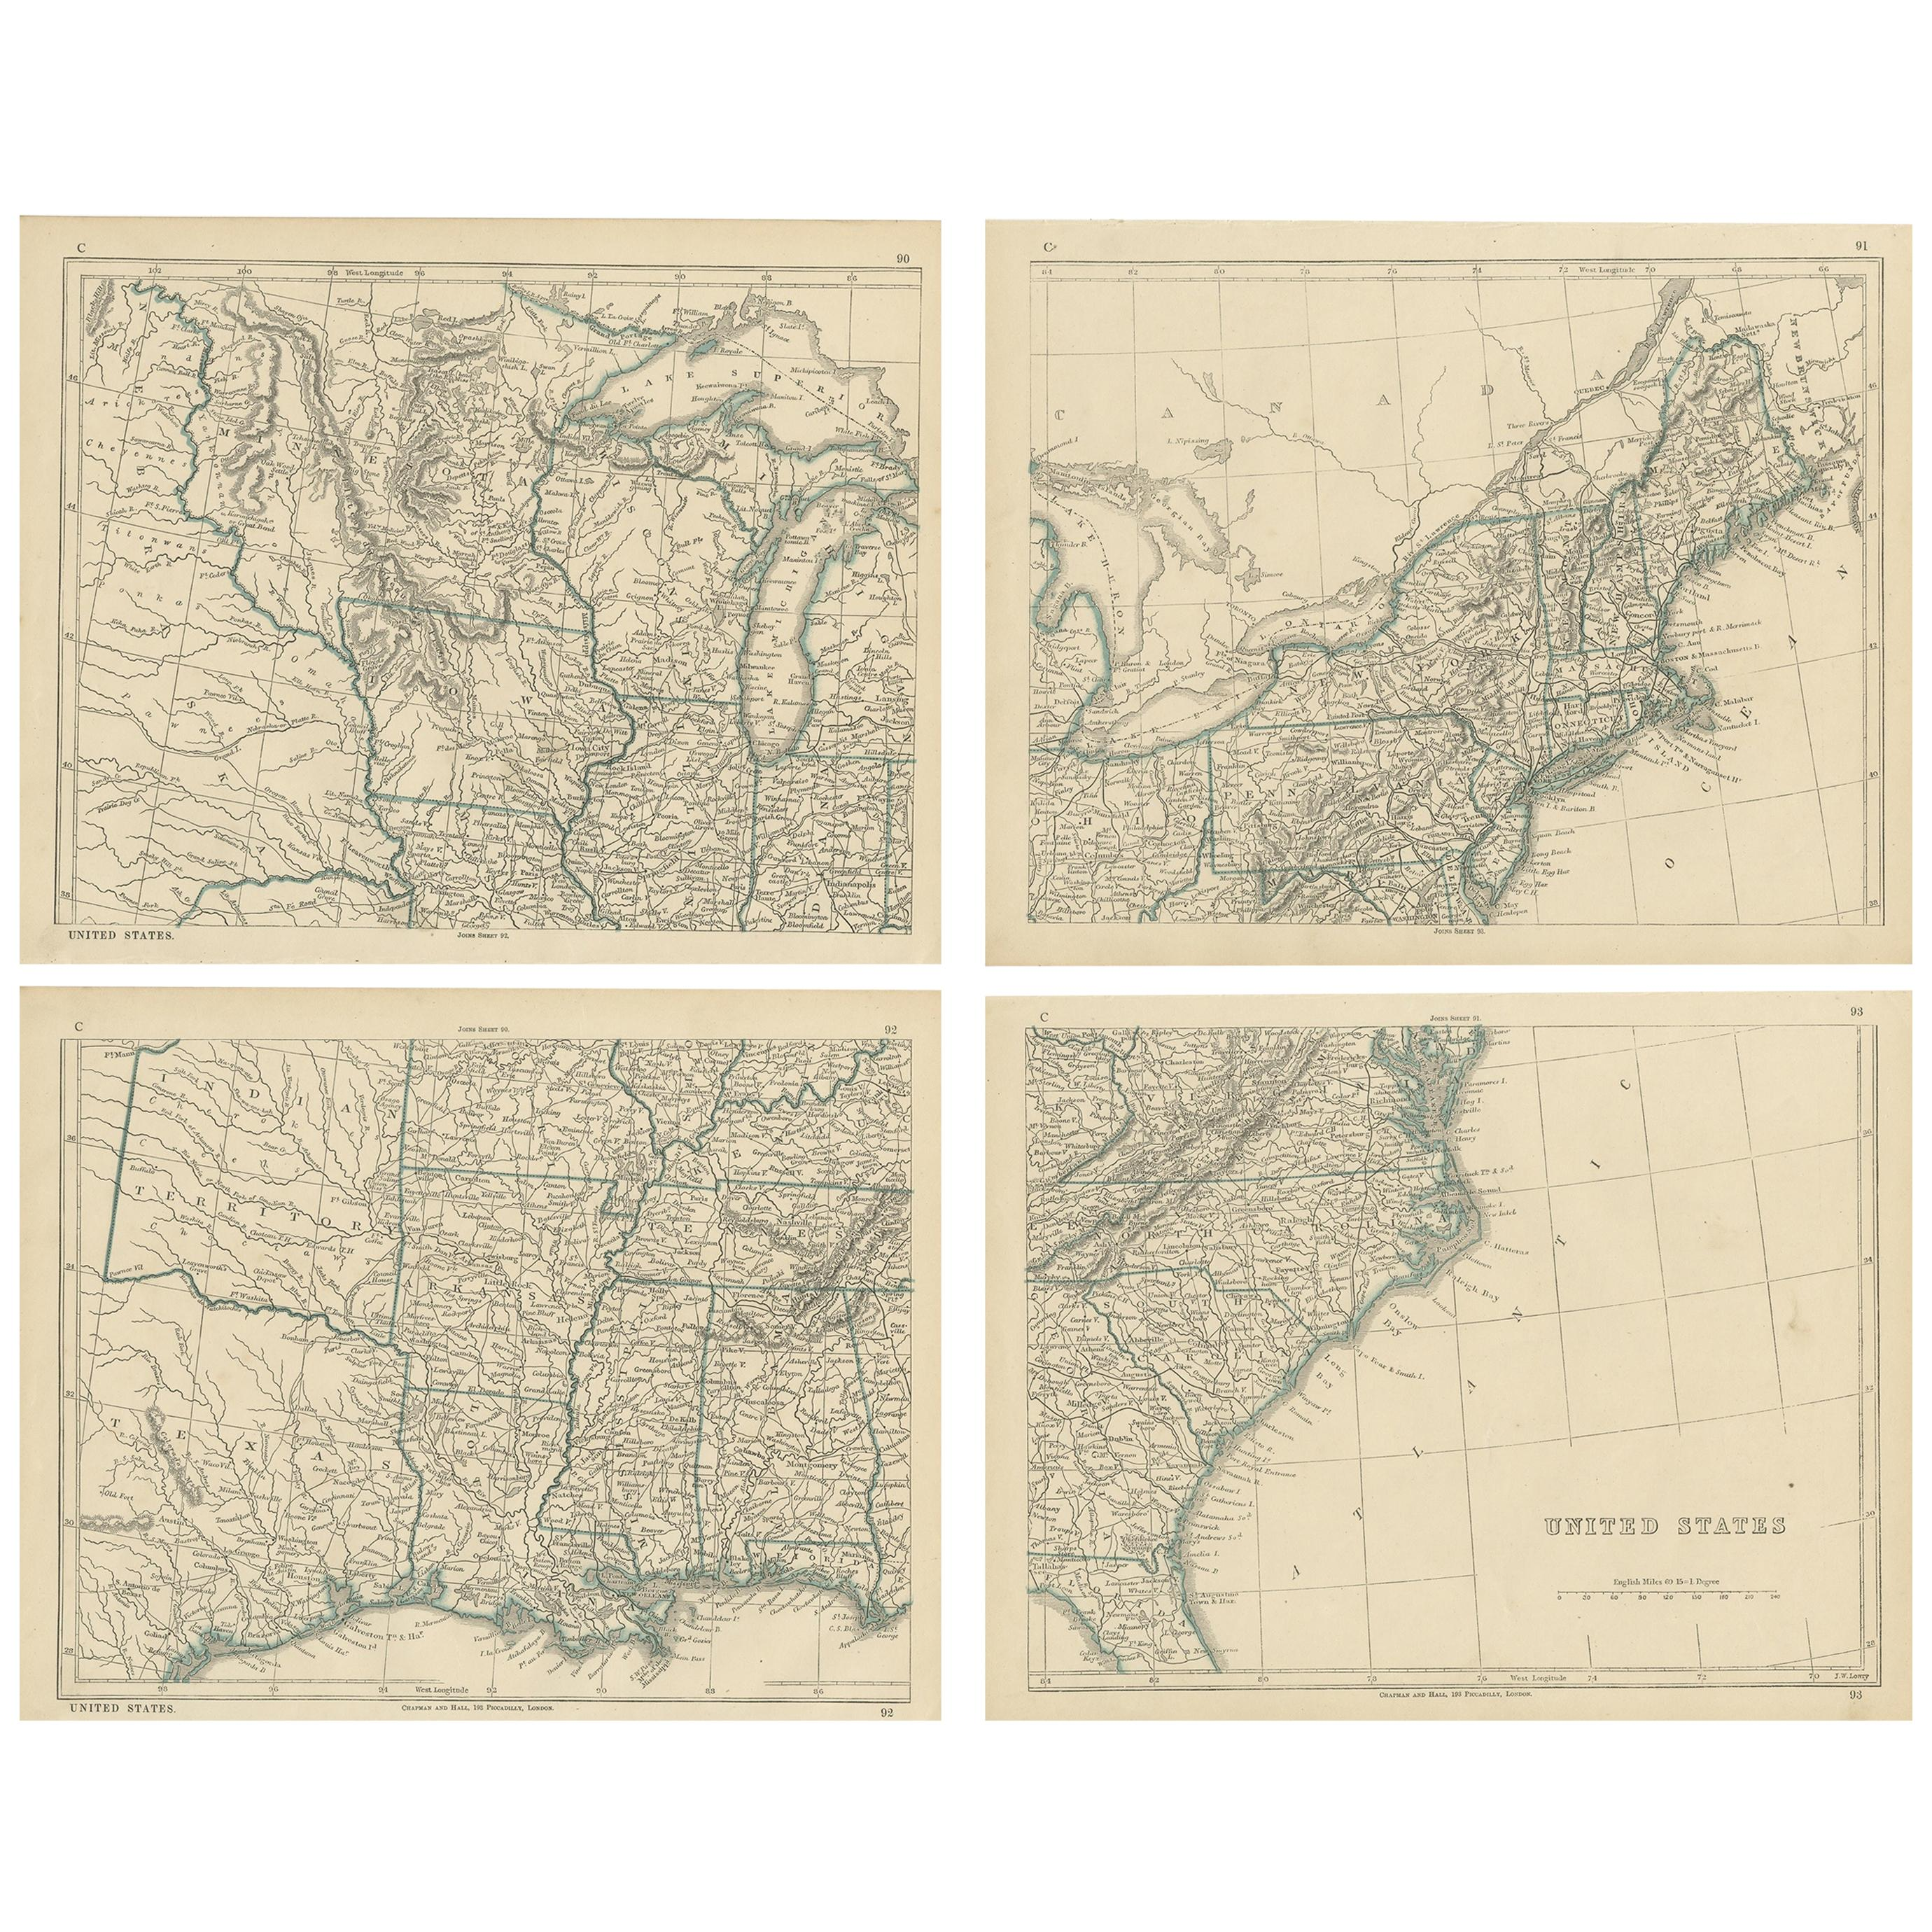 Antique Map of the United States by Lowry, '1852'